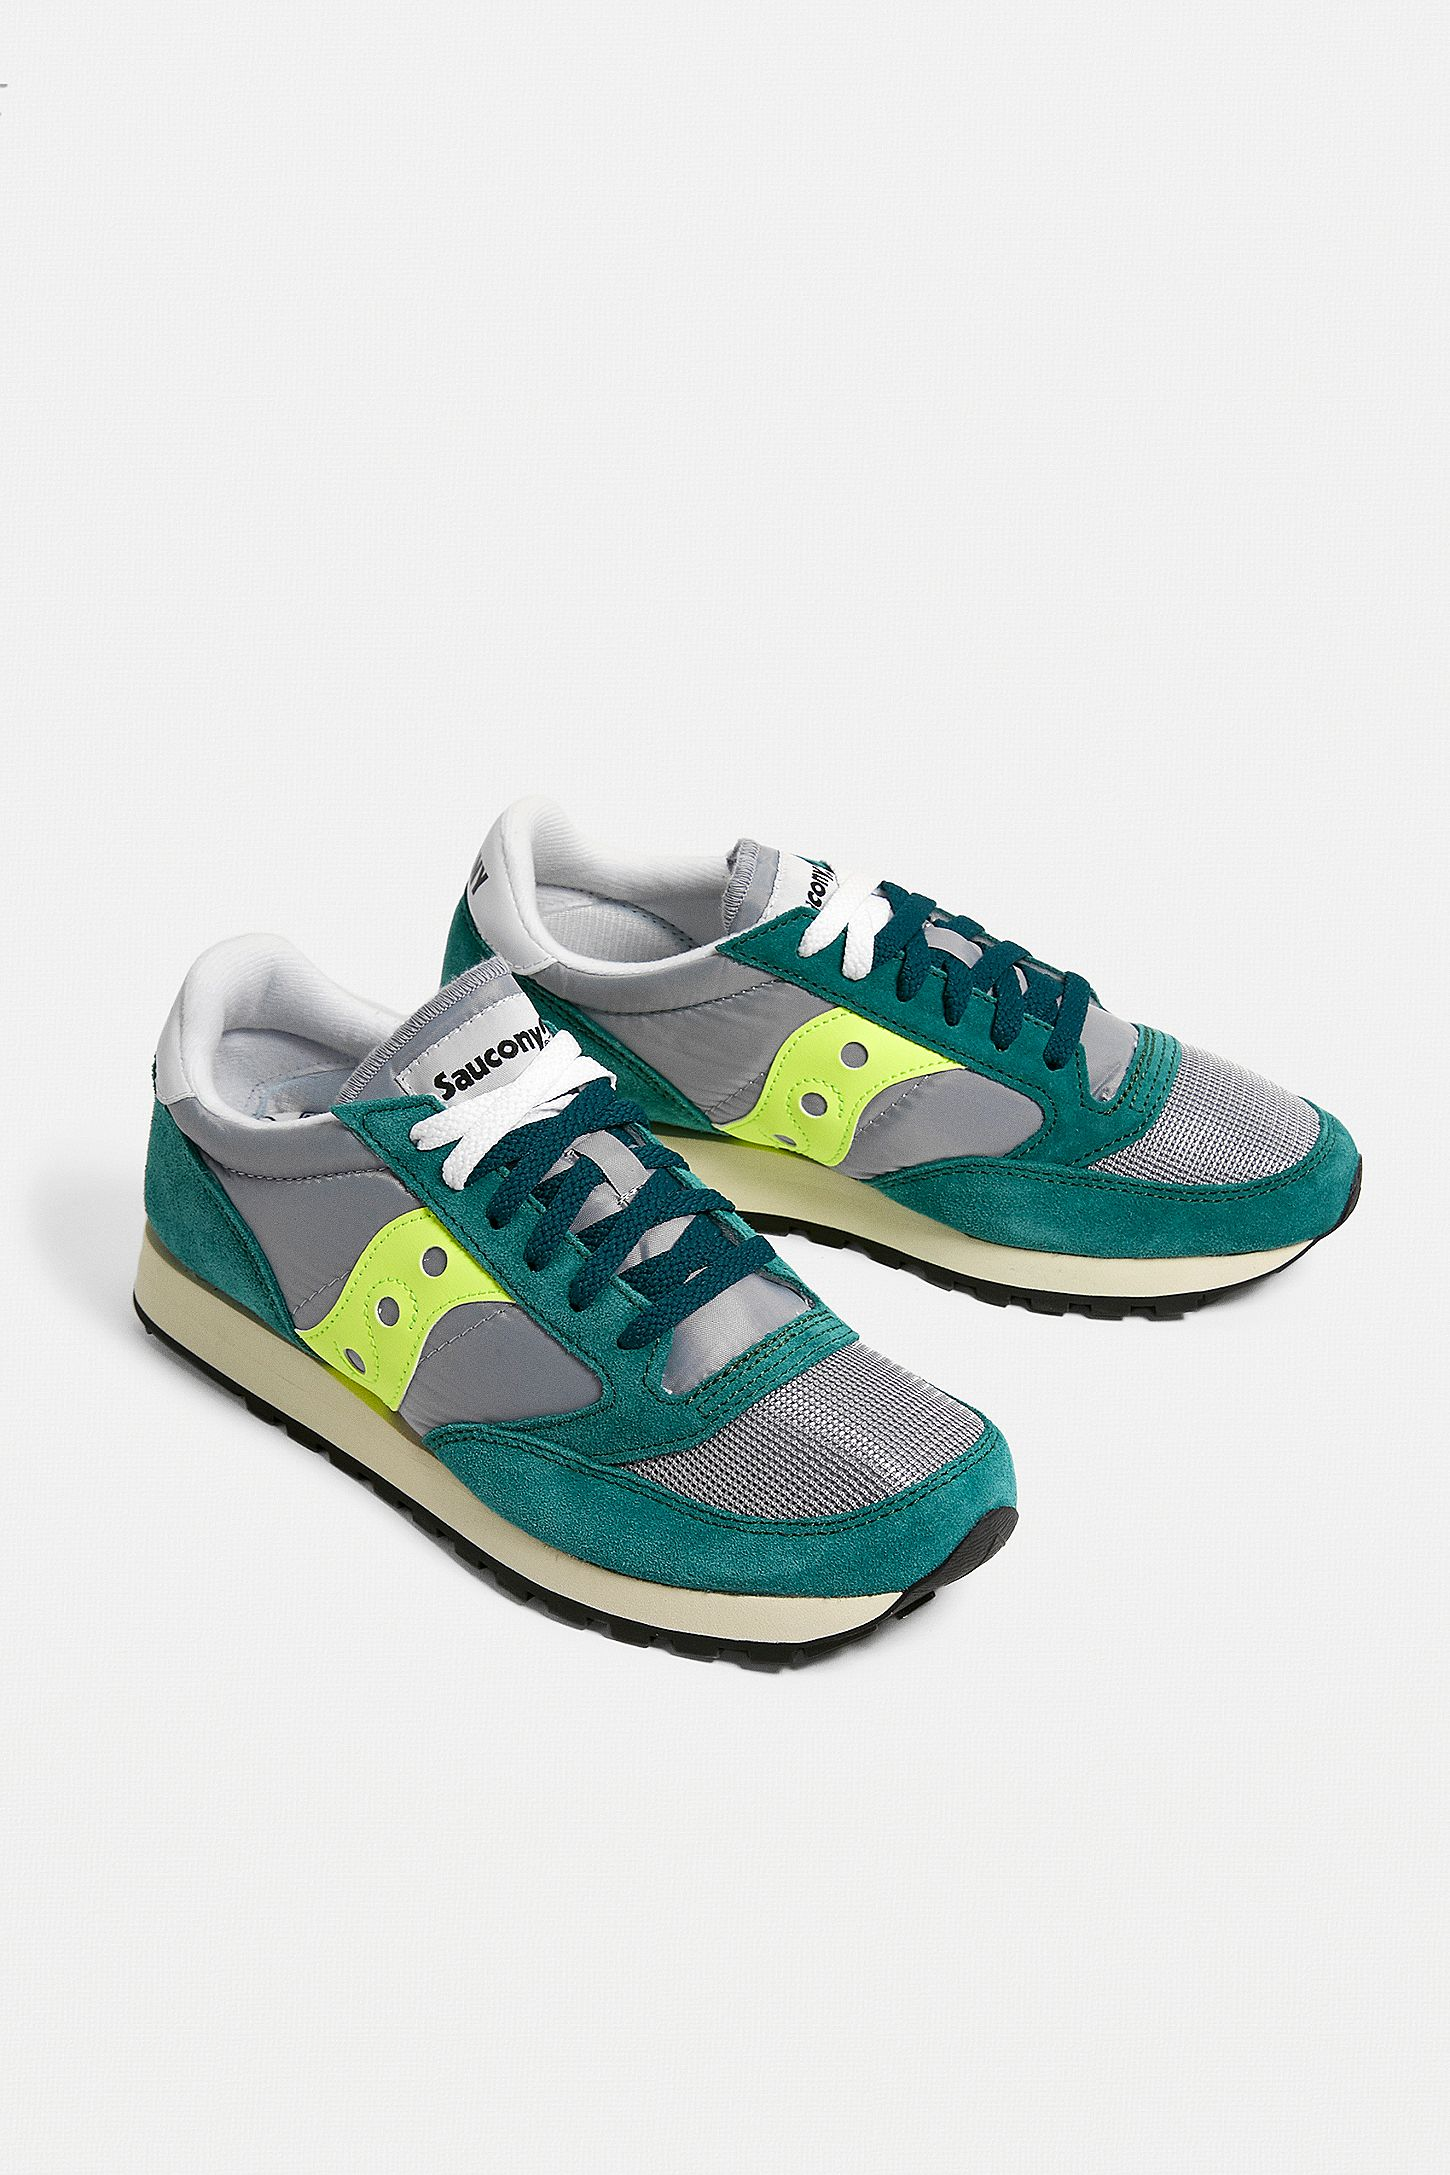 the latest d7798 bc537 Saucony Jazz Original Green, Grey and Neon Trainers